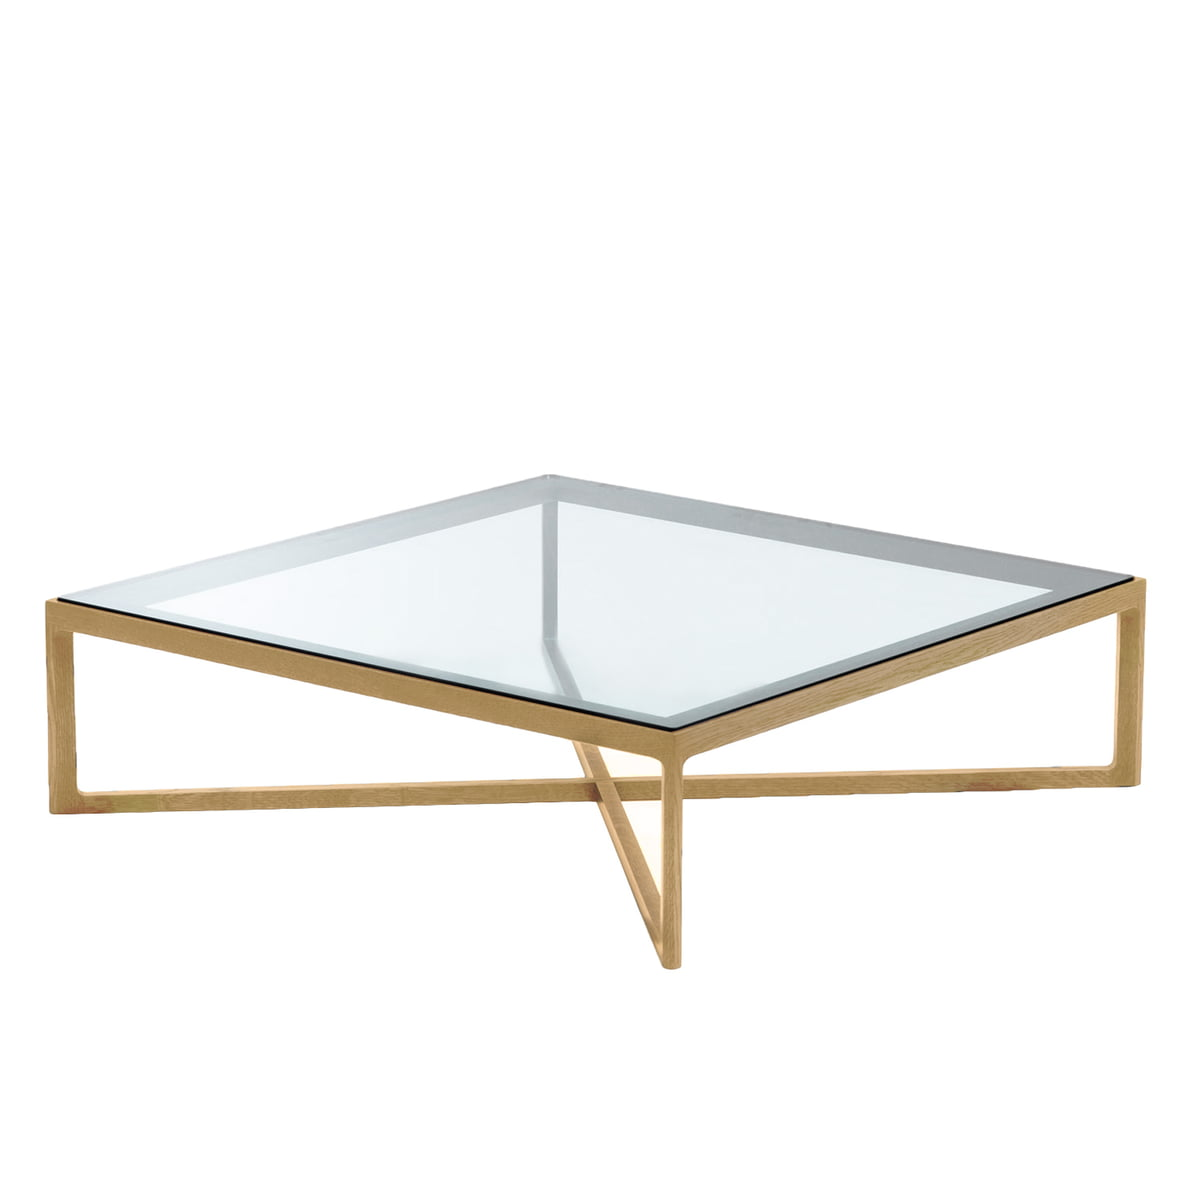 Knoll - Marc Krusin Coffee Table, oak / glass tabletop